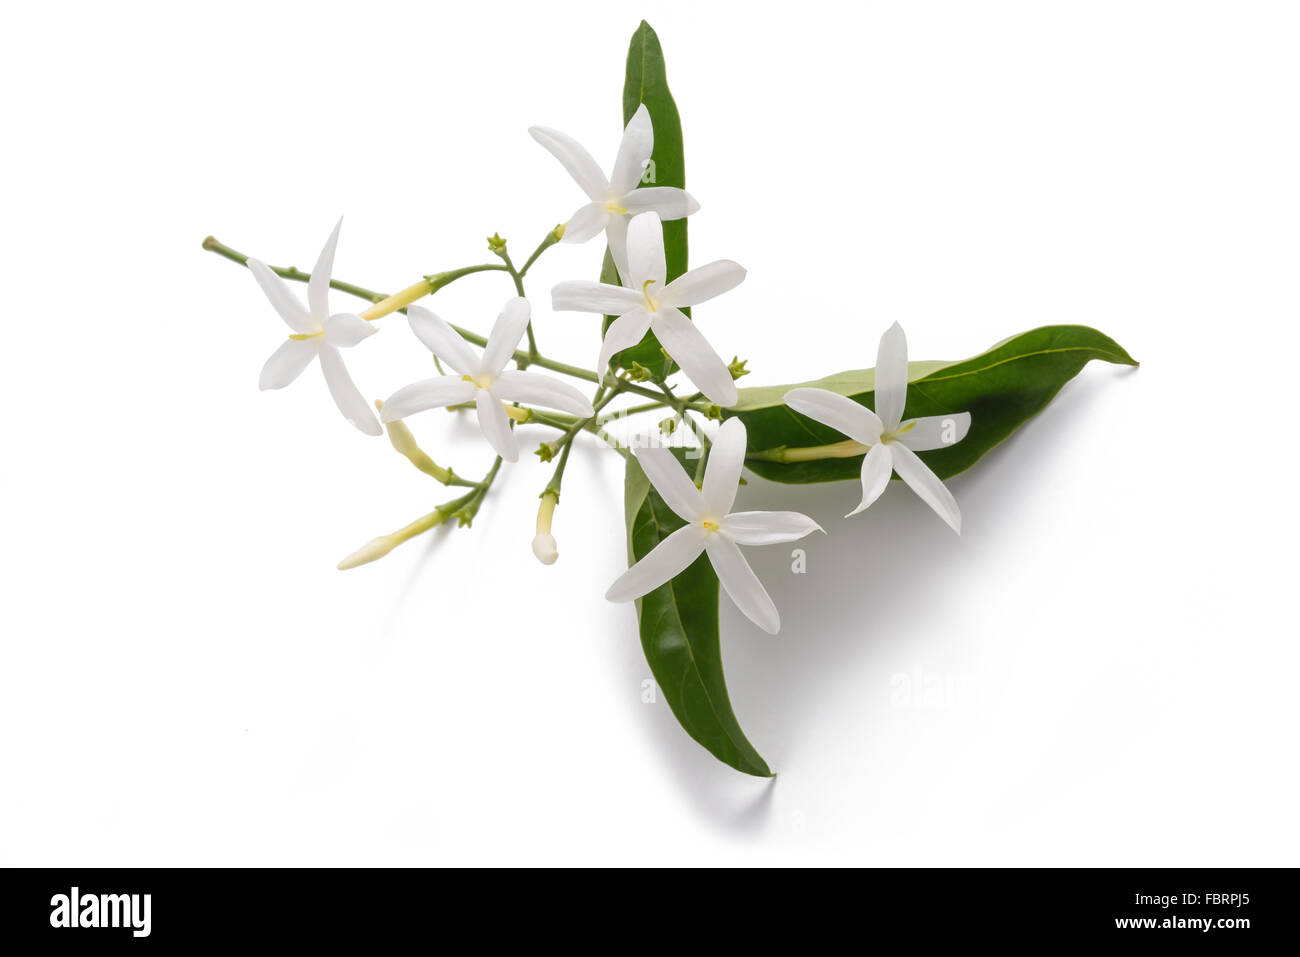 jasmine flowers with leaves isolated on white - Stock Image